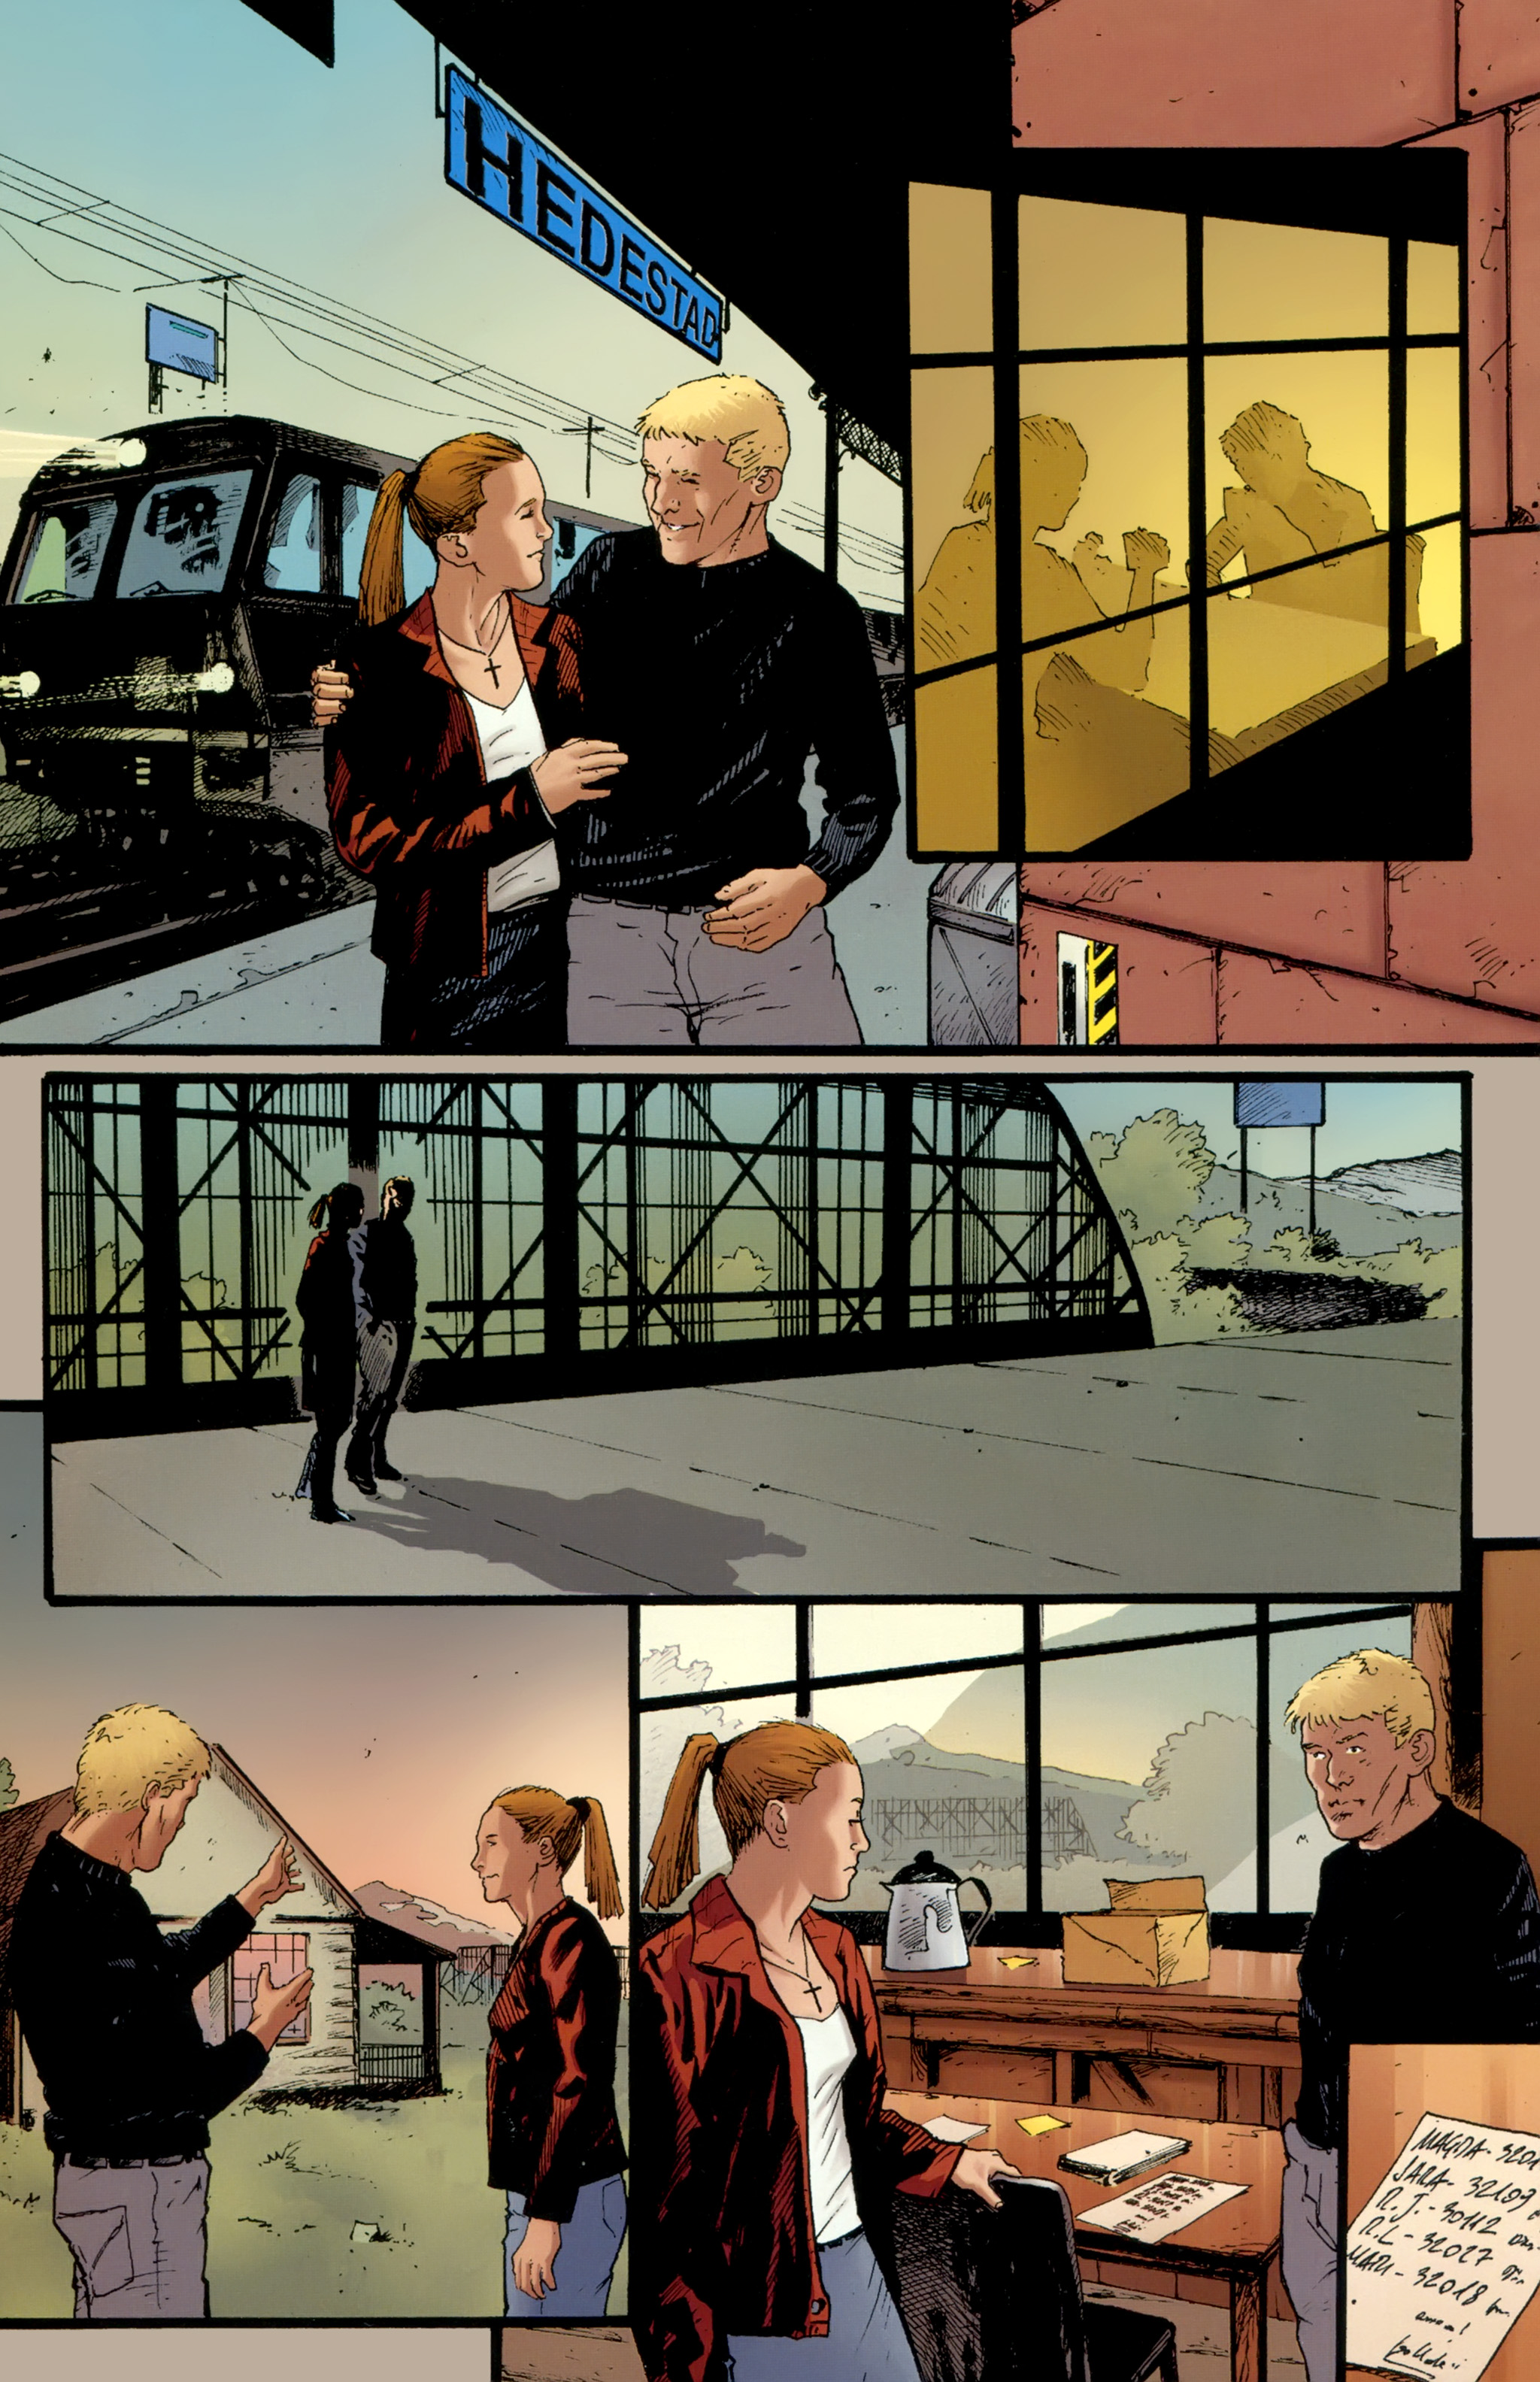 Read online The Girl With the Dragon Tattoo comic -  Issue # TPB 2 - 31